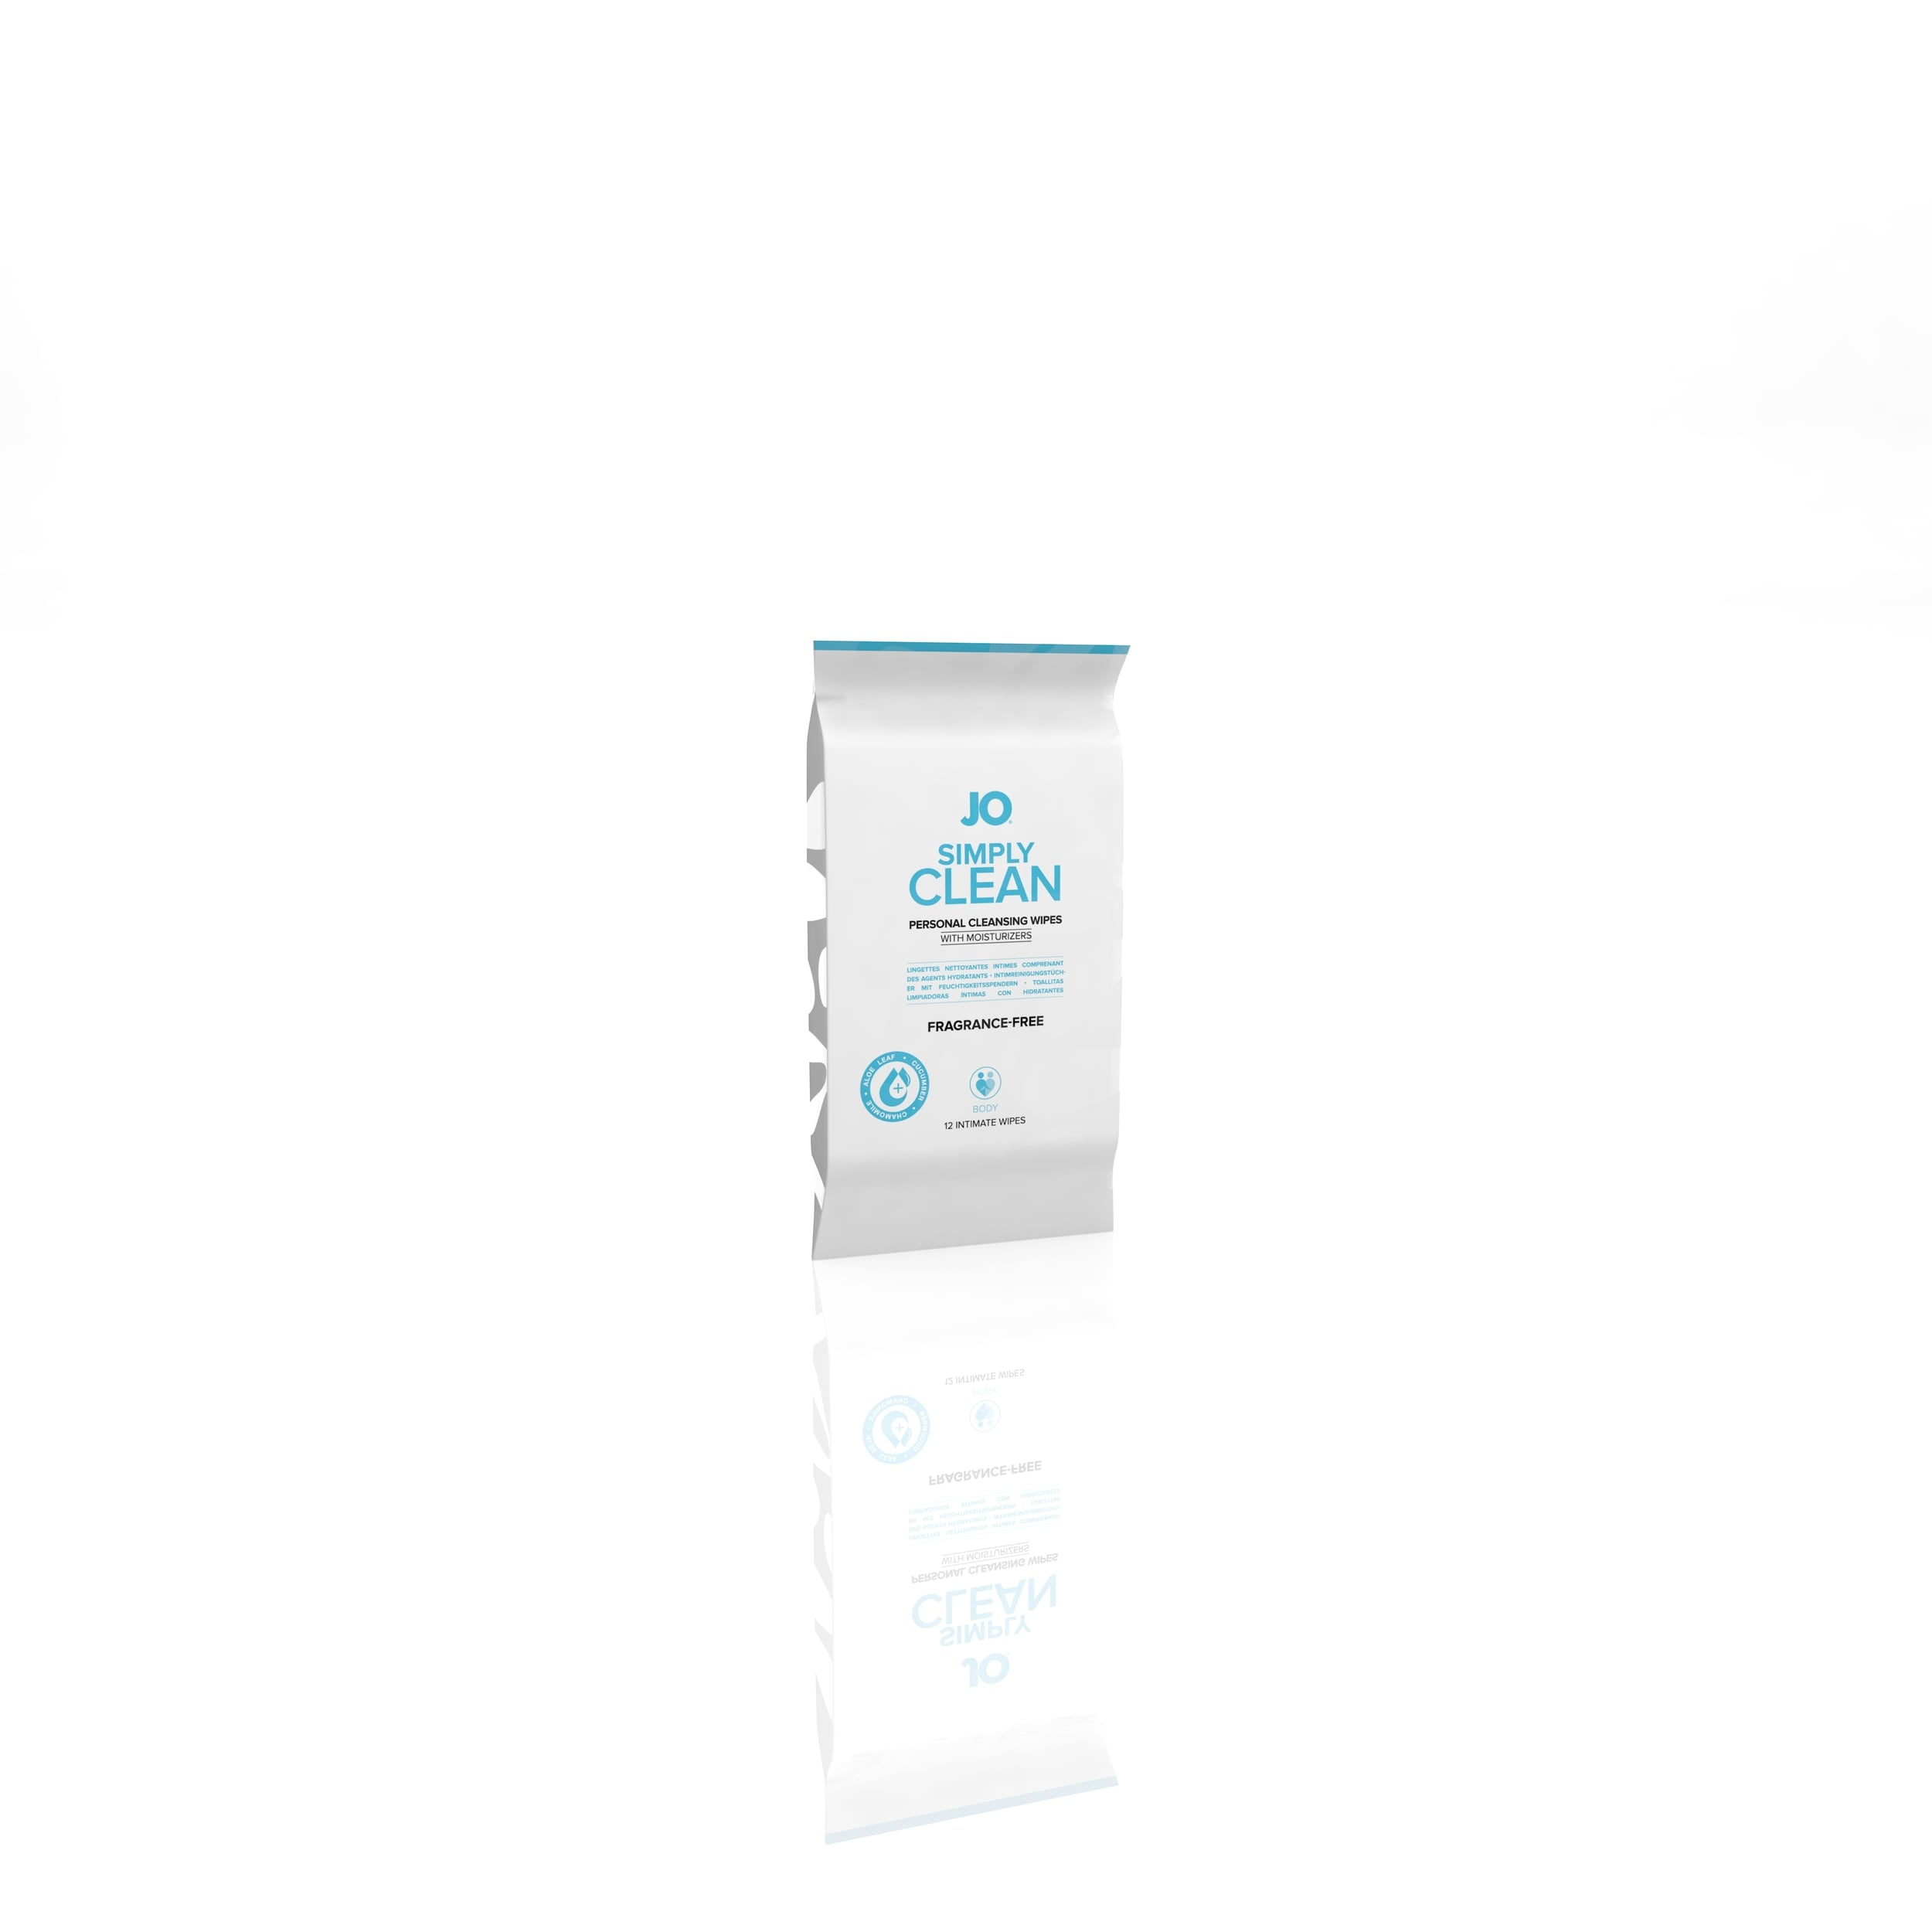 10222 - JO PERSONAL CLEANSING WIPES - SIMPLY CLEAN - 12 pack  (MOQ 12 units - Includes Counter Display) ISO.jpg